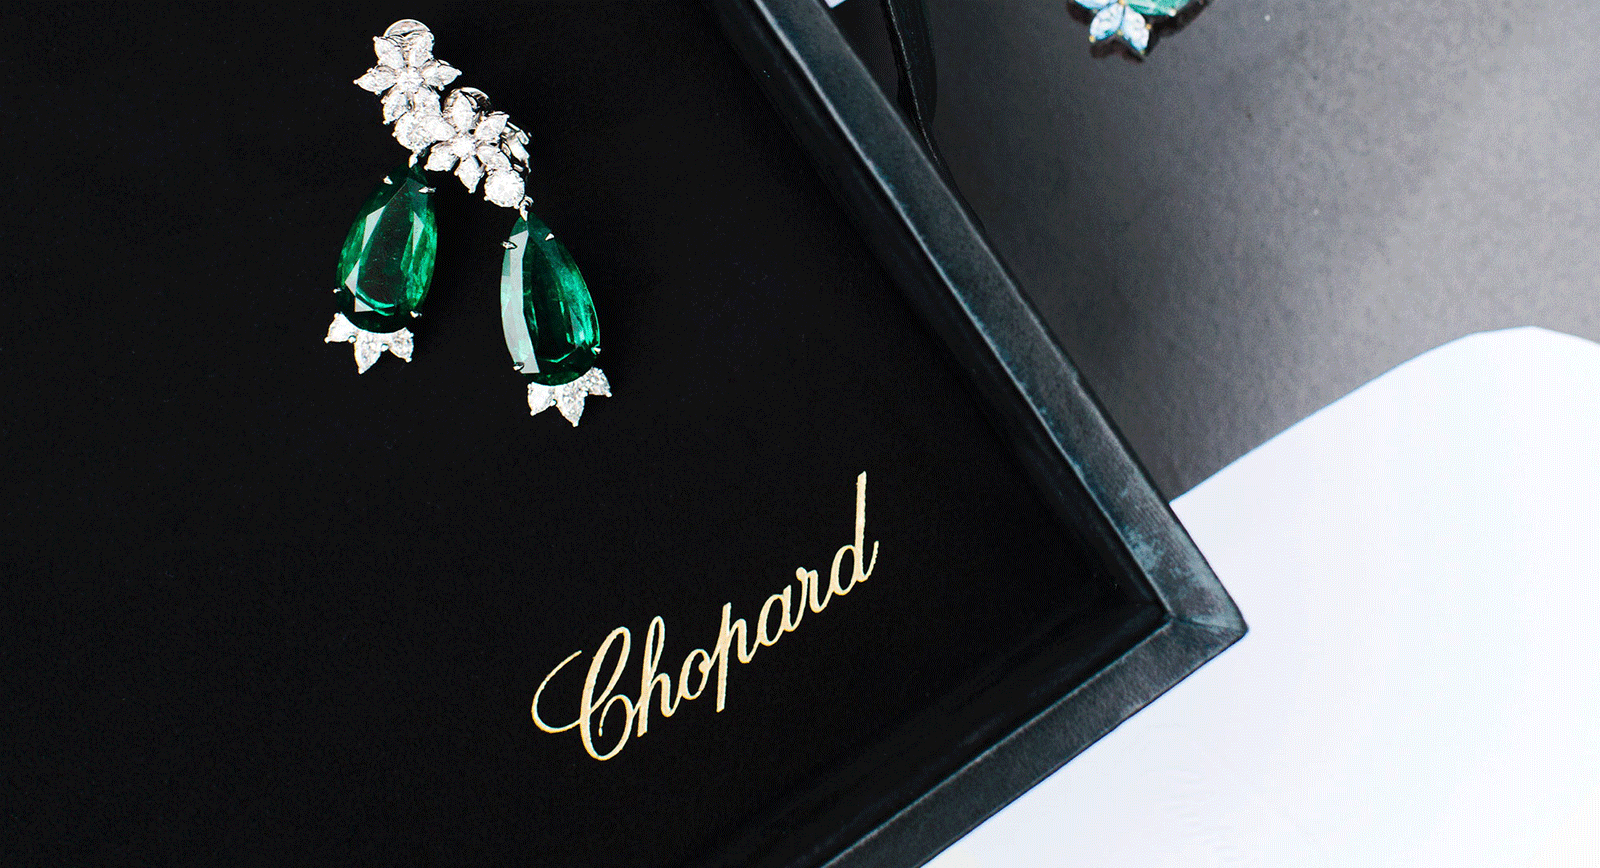 Chopard Presented Two New High Jewellery Collections at the Cannes Festival